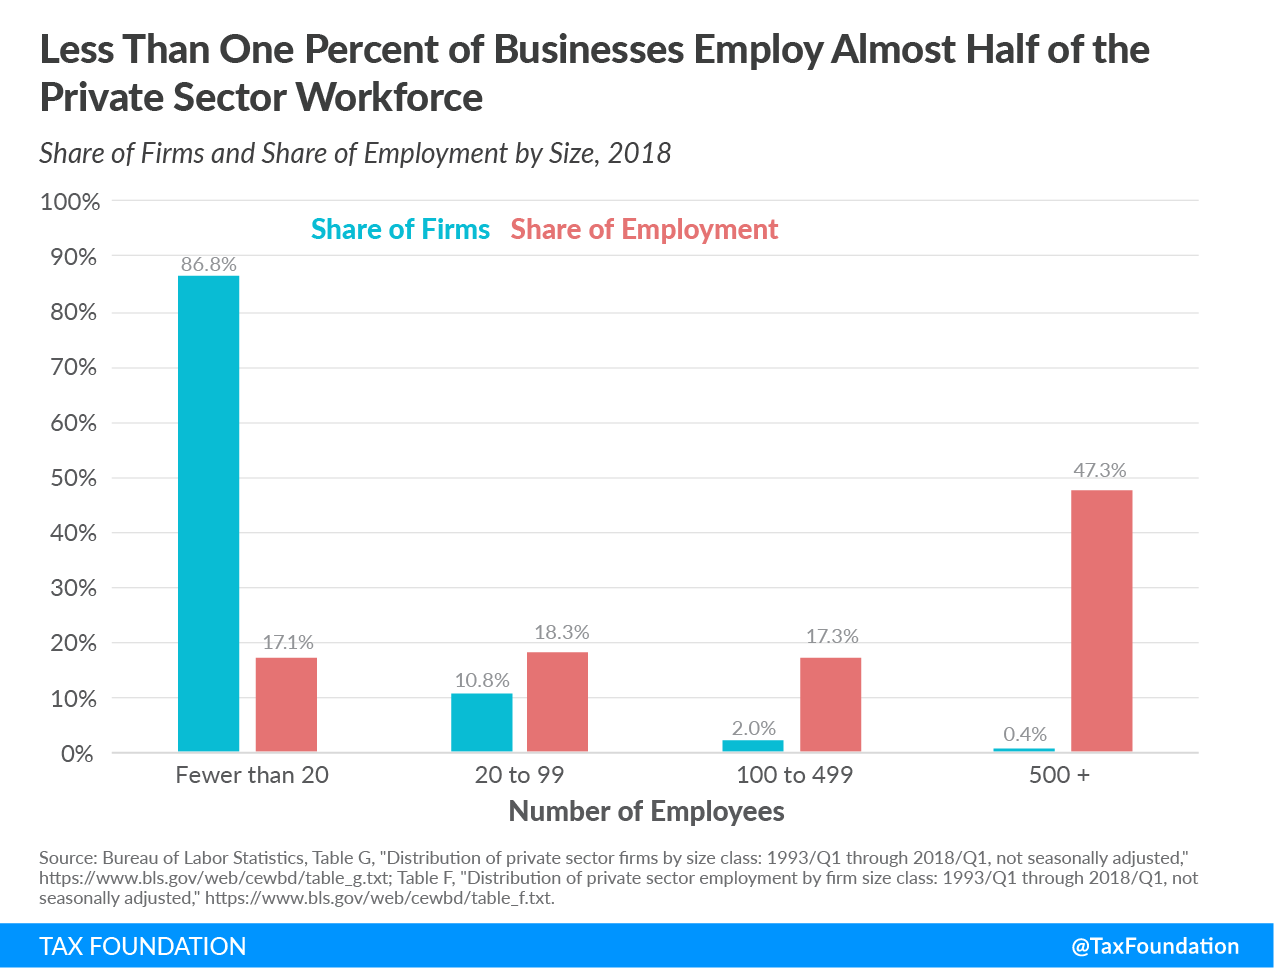 Less than one percent of businesses employ almost half of the private sector workforce